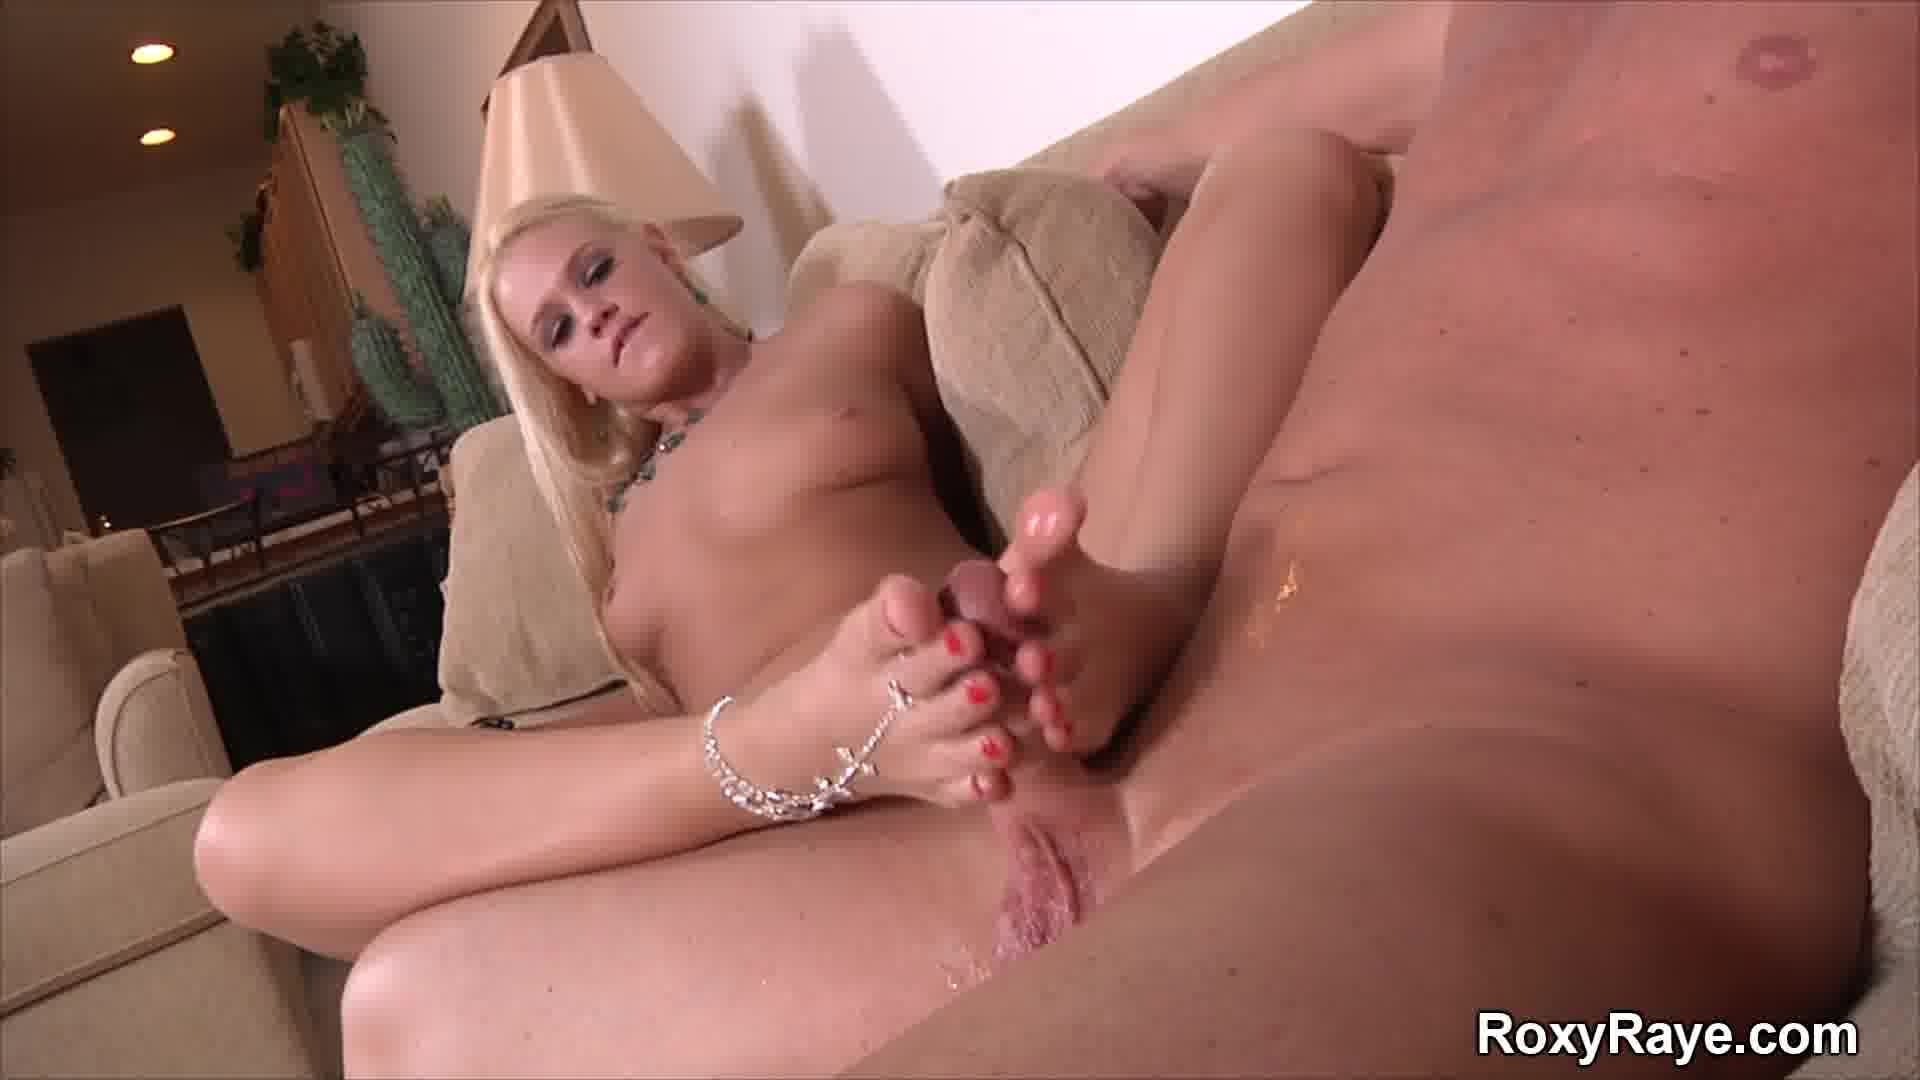 [Roxy Raye] My First Footjob